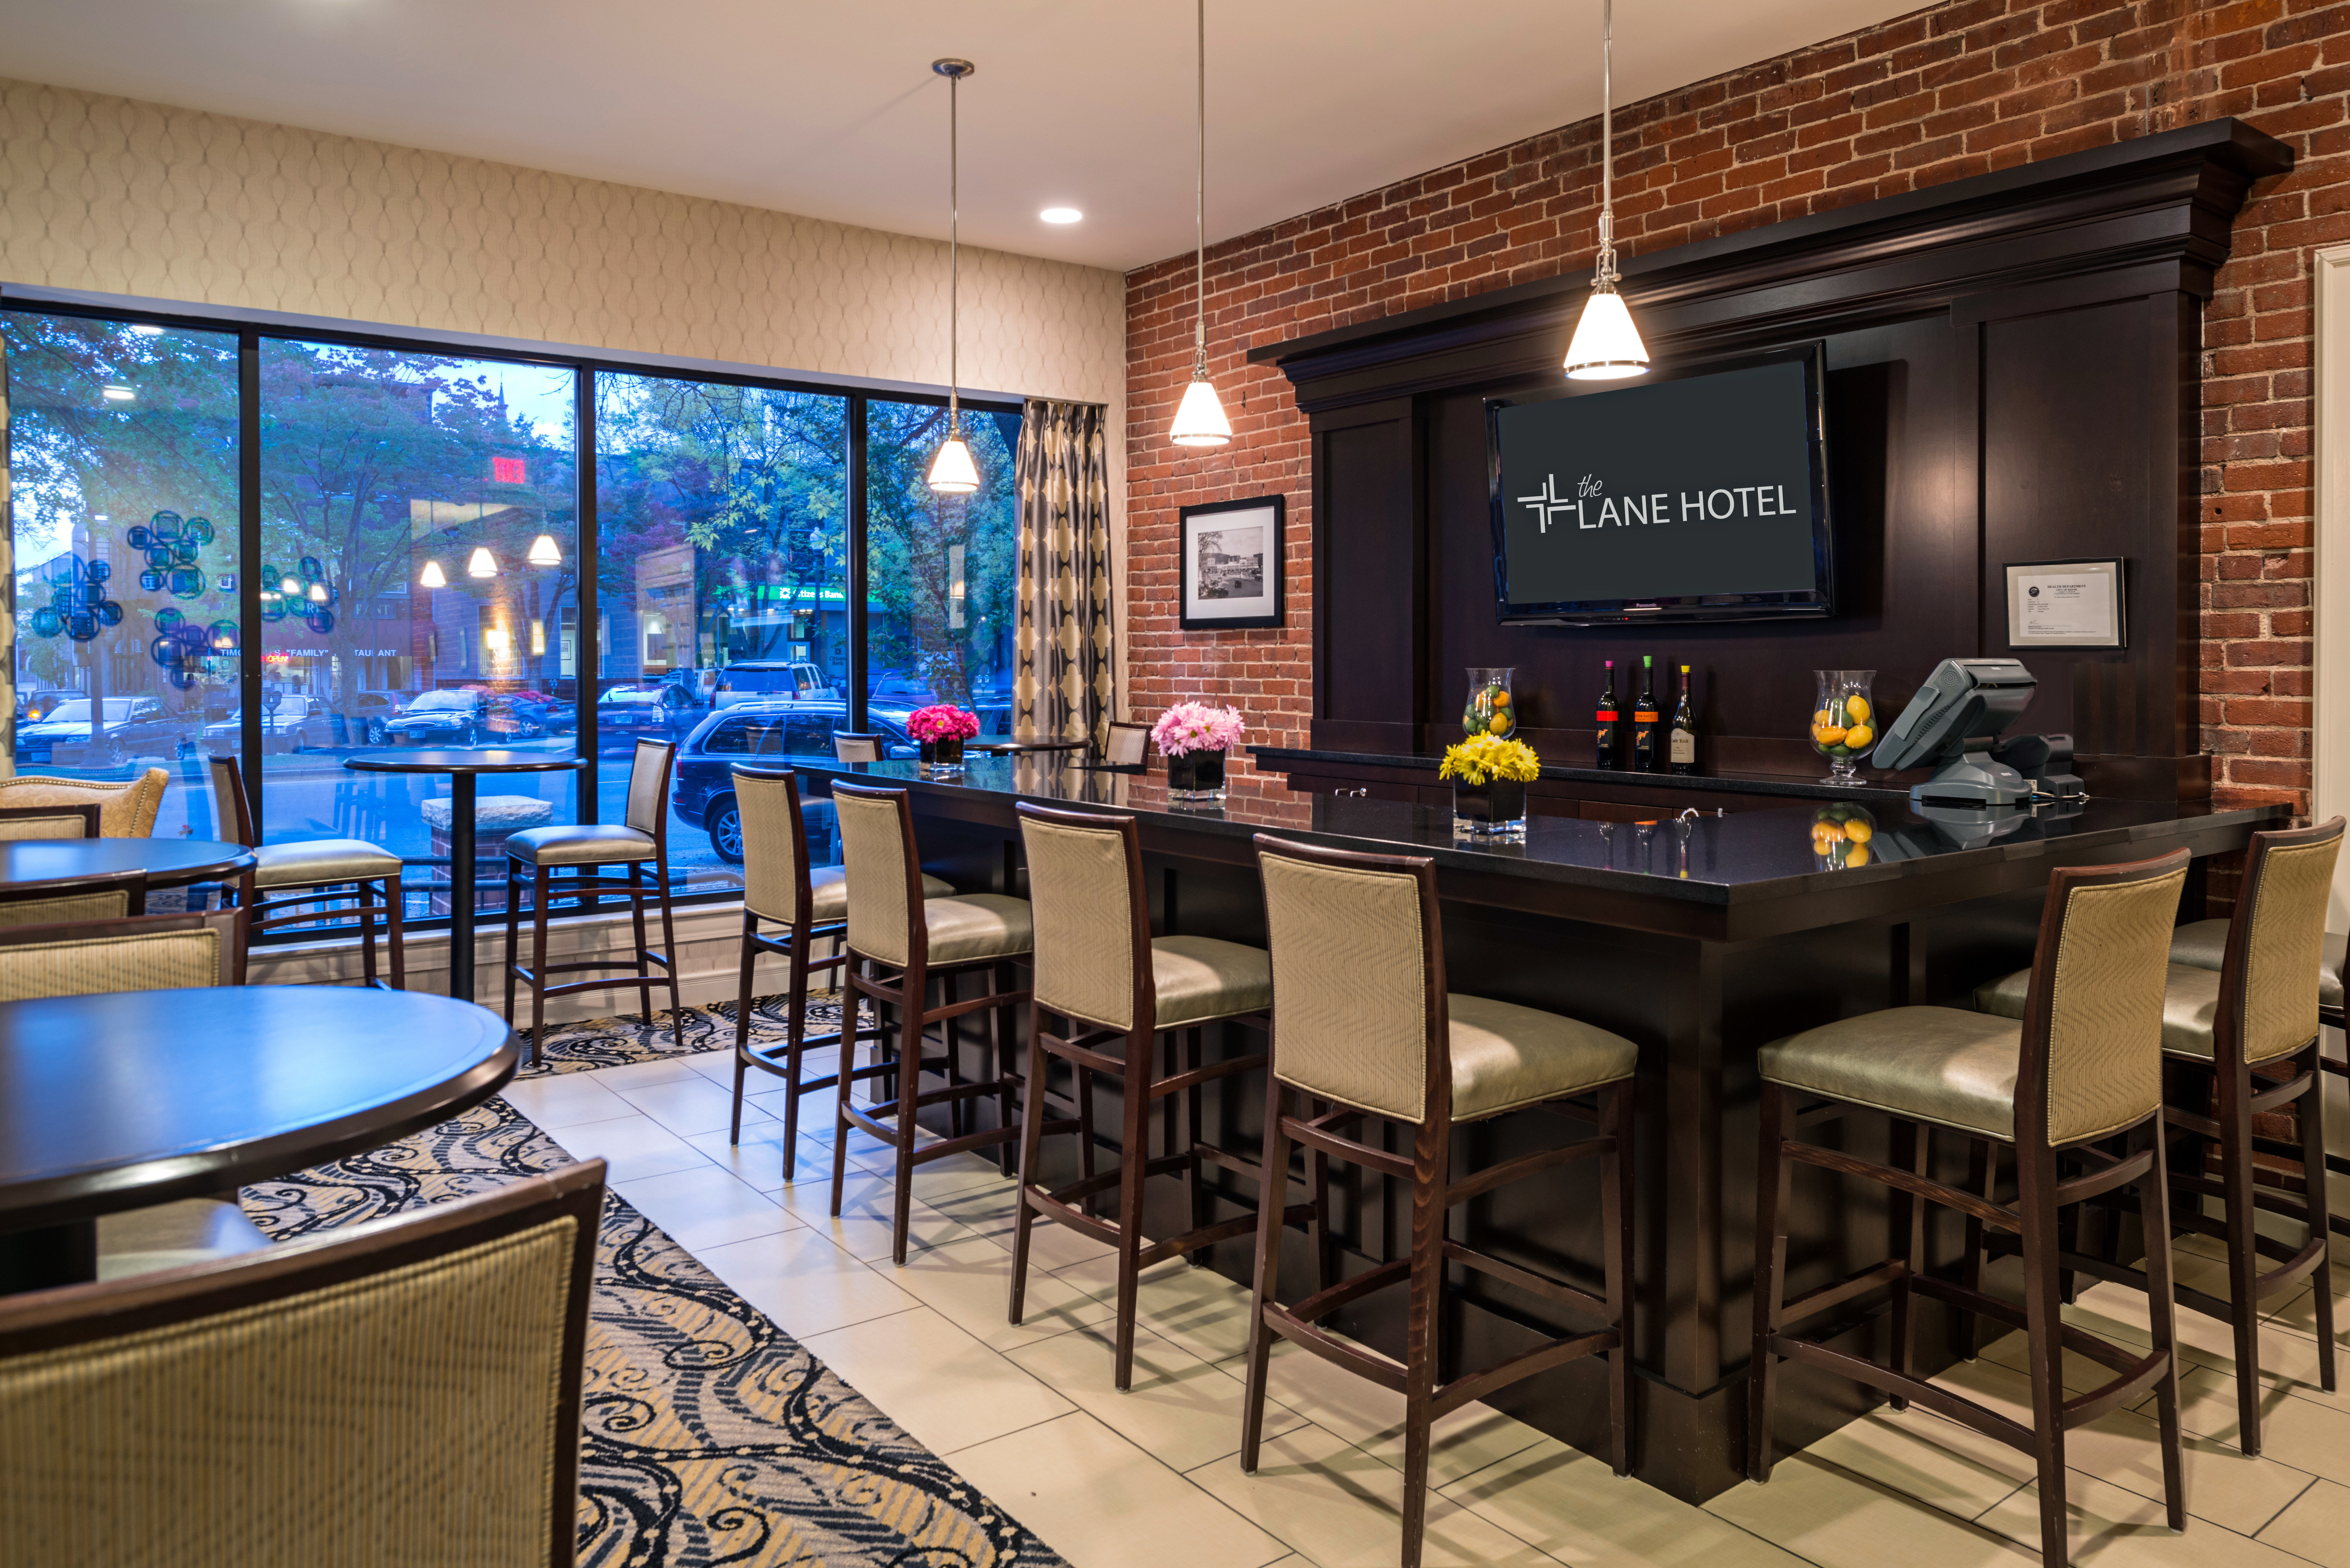 Boutique Dining Drink Eat Historic Lounge Modern recreation room chair property billiard room Lobby Bar conference hall restaurant Suite